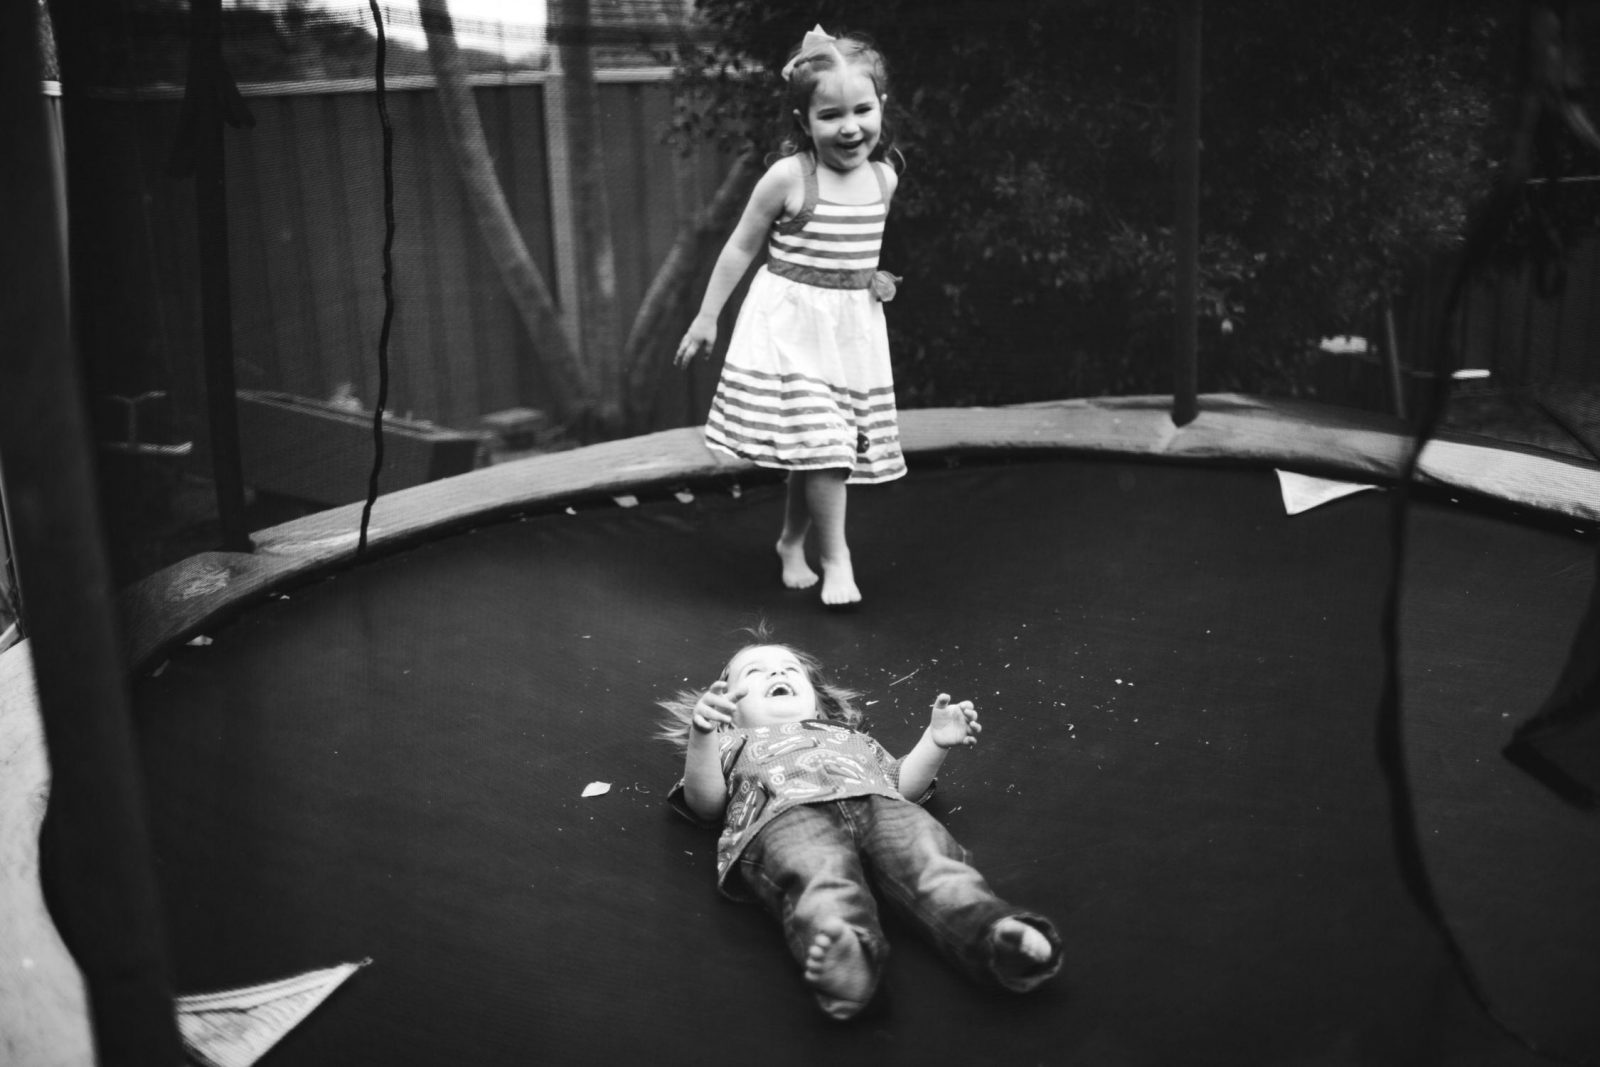 kids on the trampoline photograph wollongong nsw